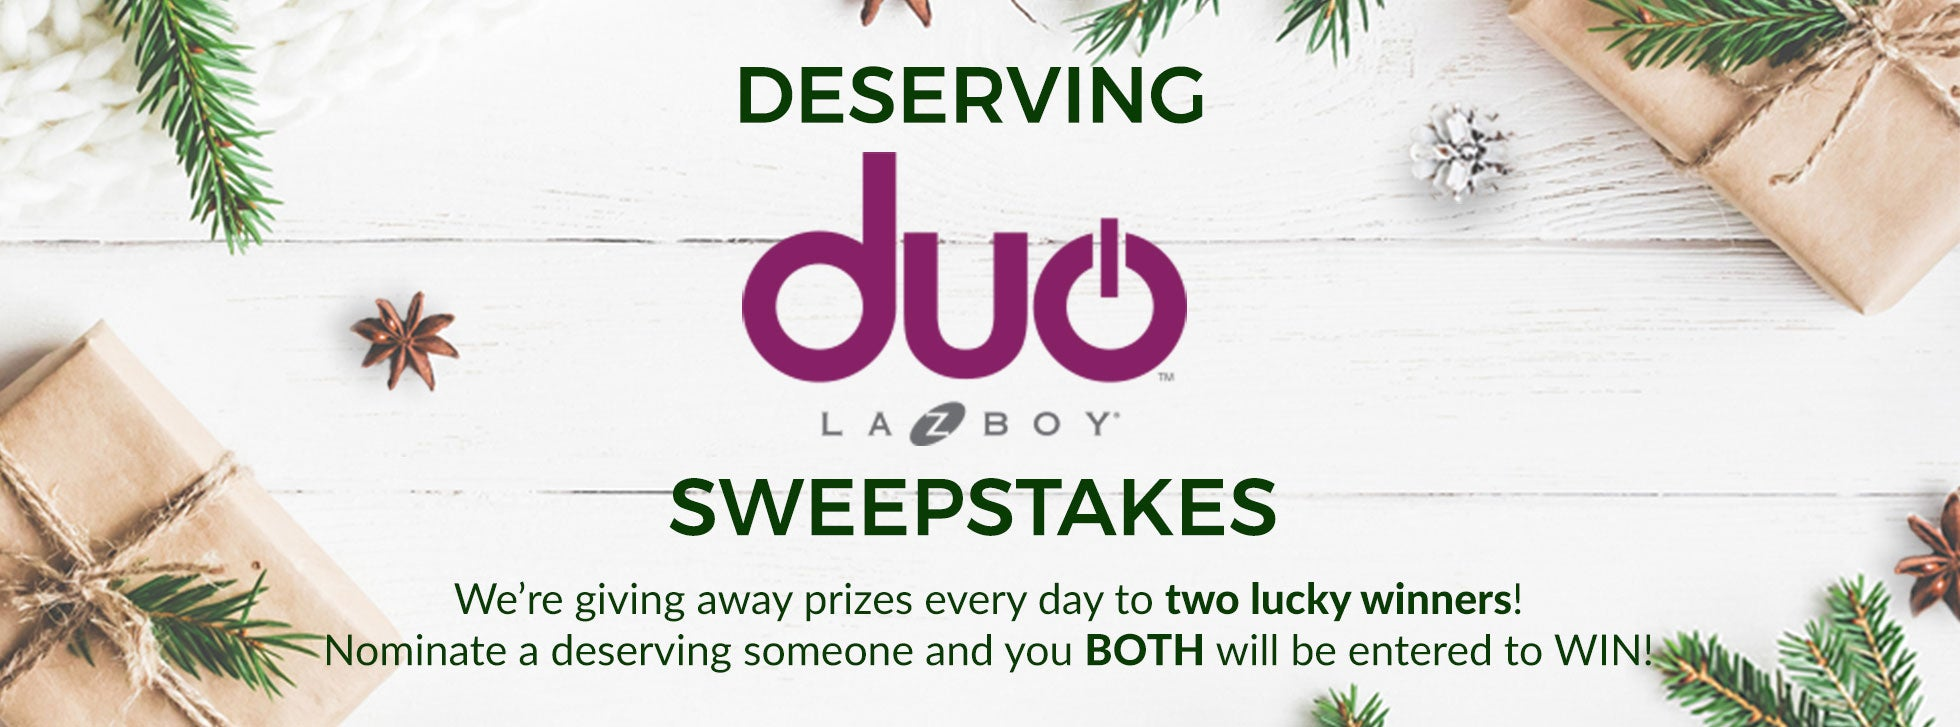 Deserving duo Sweepstakes